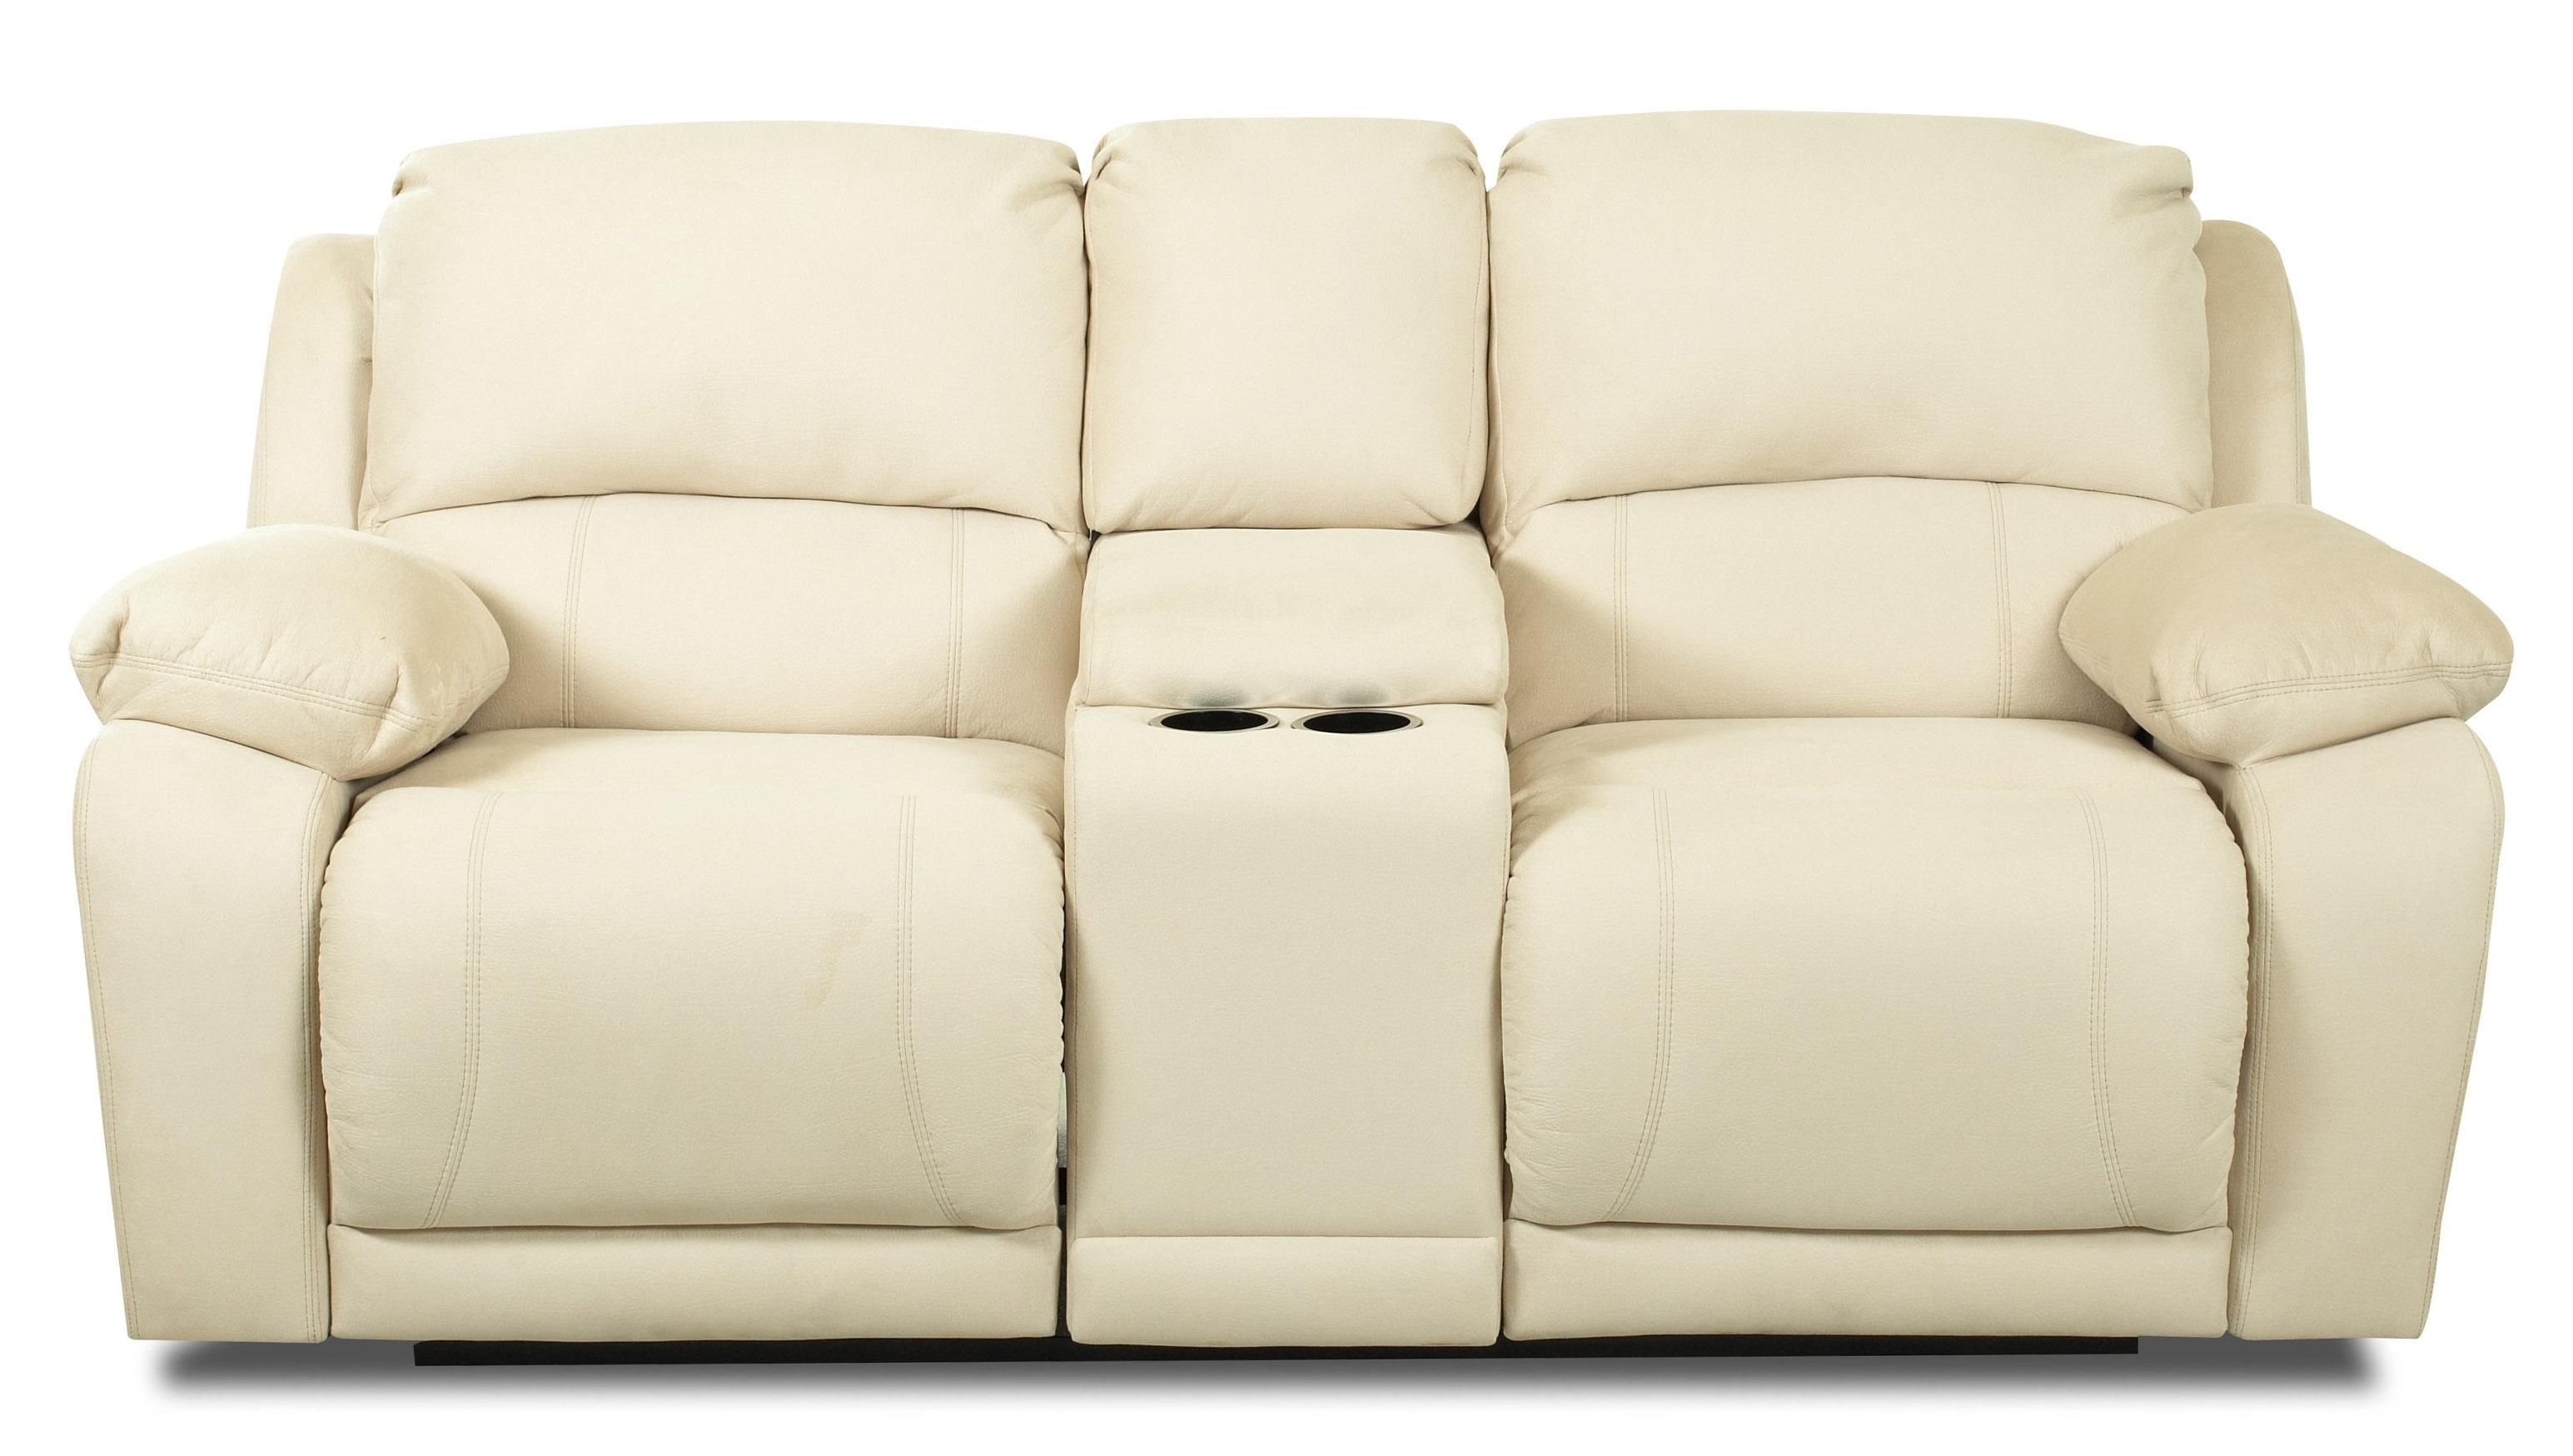 Precious Loveseat With Storage In 2020 Love Seat Couch Leather Couch